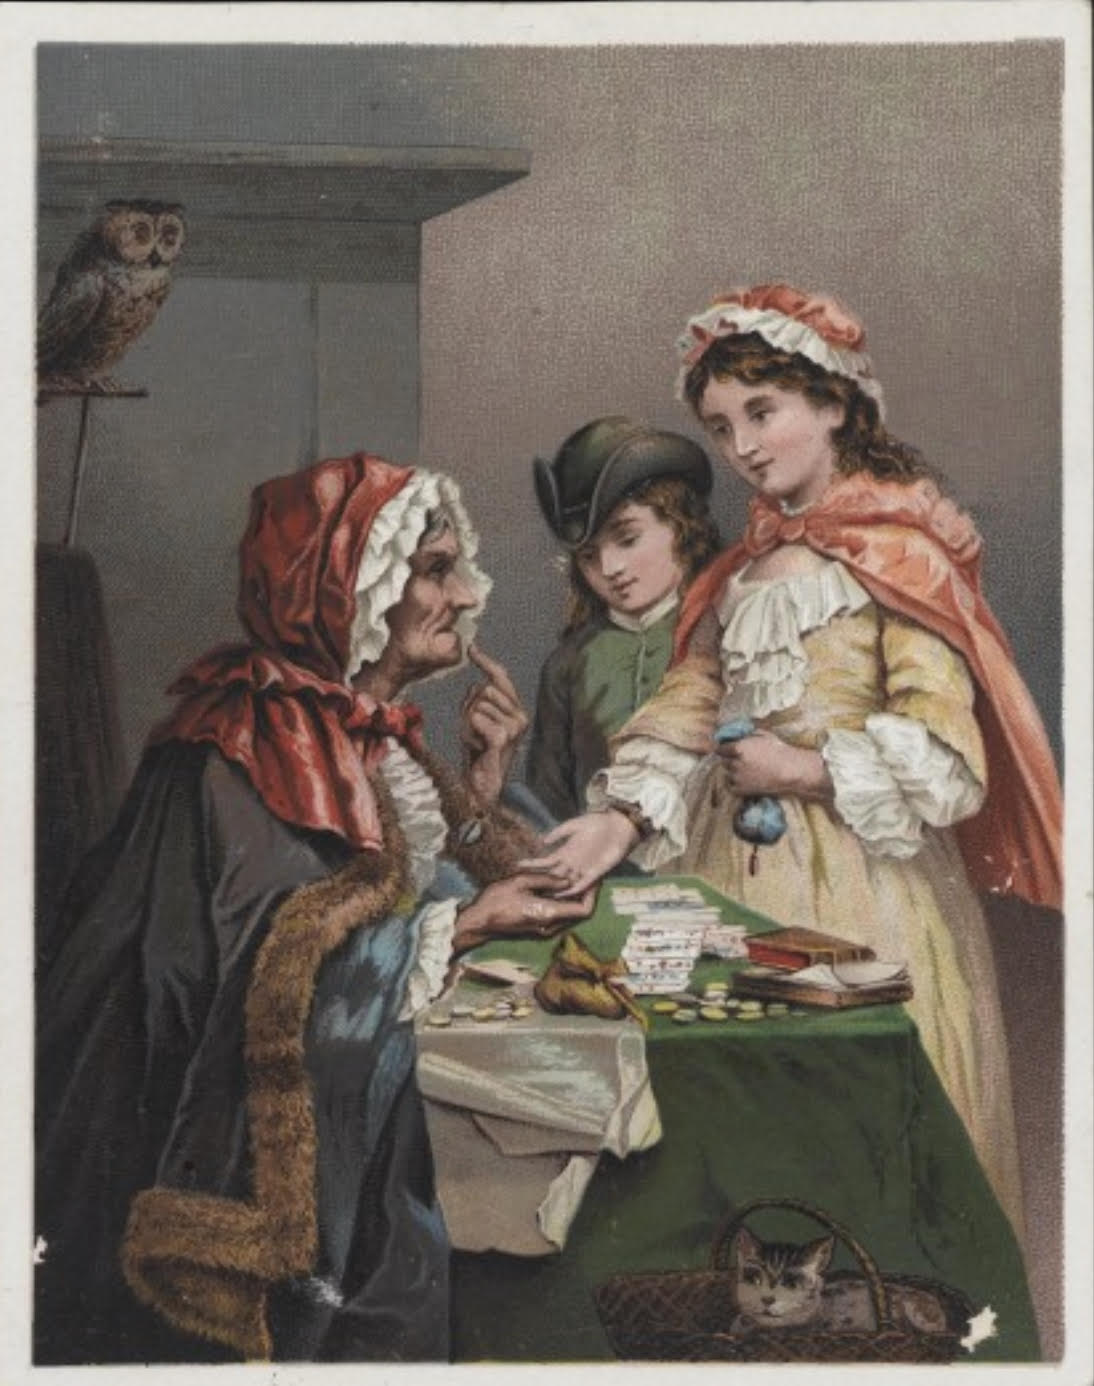 Photo: The Gypsy Fortune Teller. Color card depicting young girl having her palm read by a fortune teller.  Source: Wellcome Library